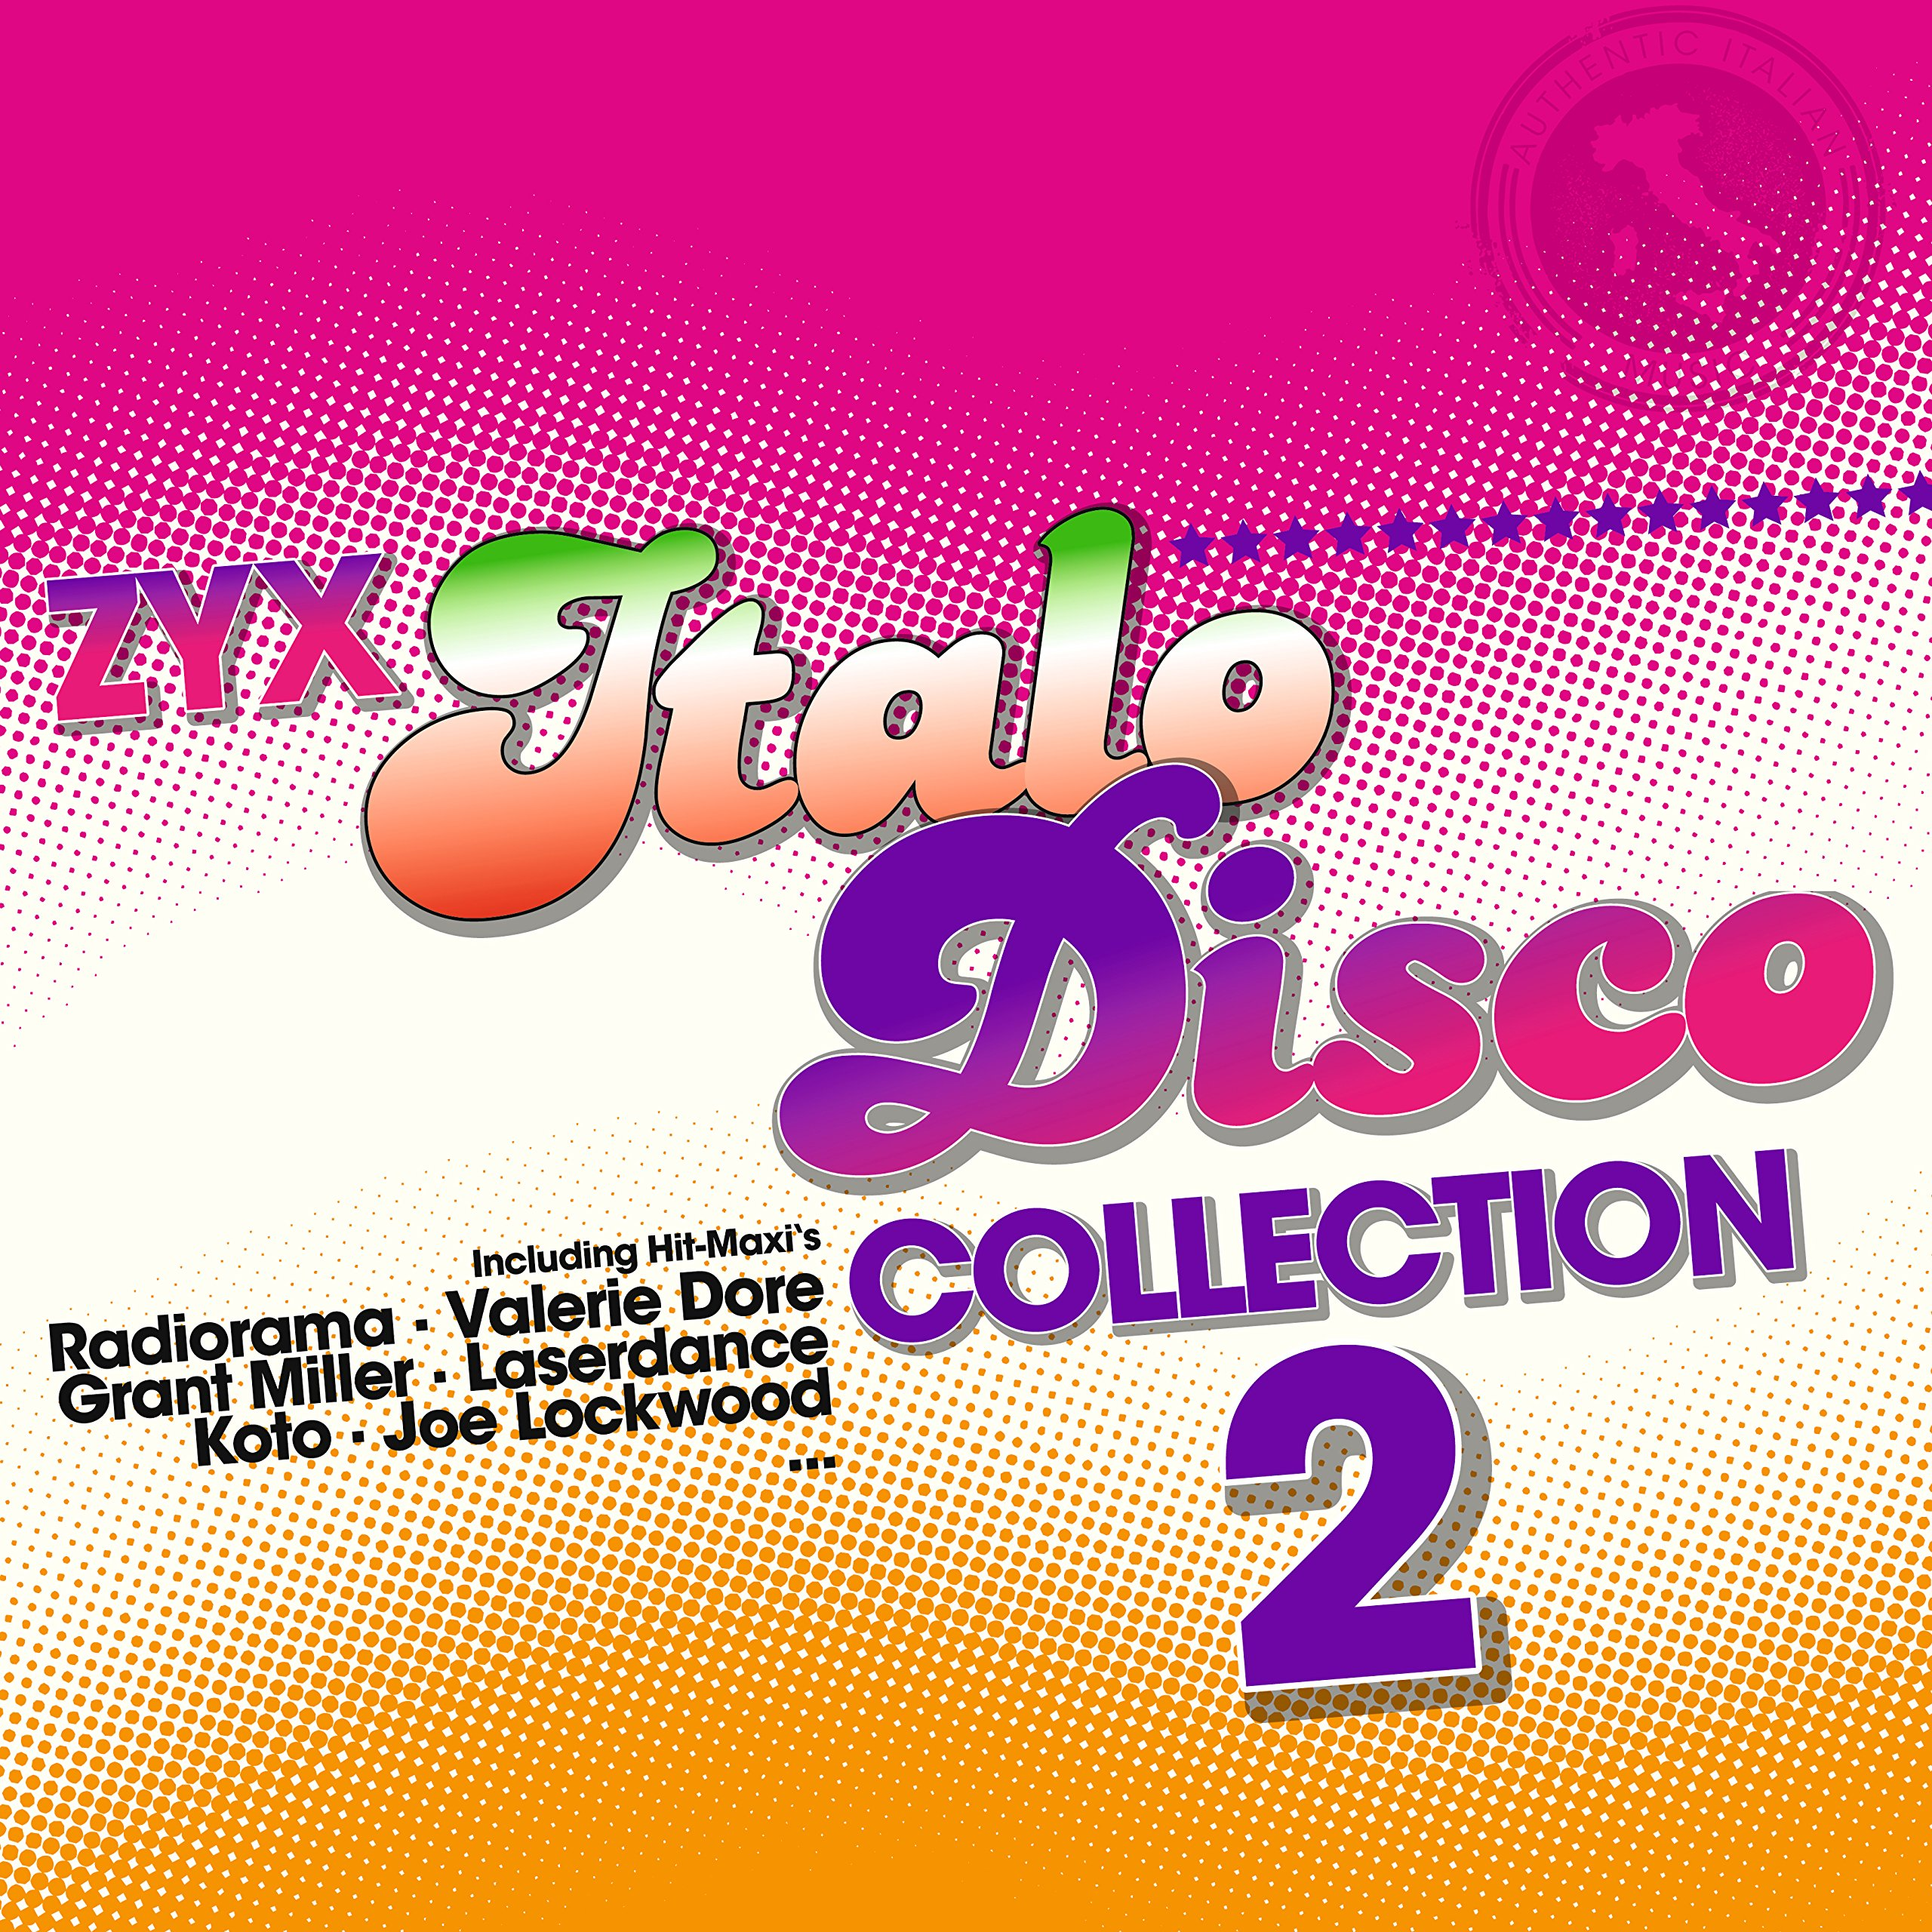 Vinilo : Zyx Italo Disco Collection 2 / Various (2 Disc)